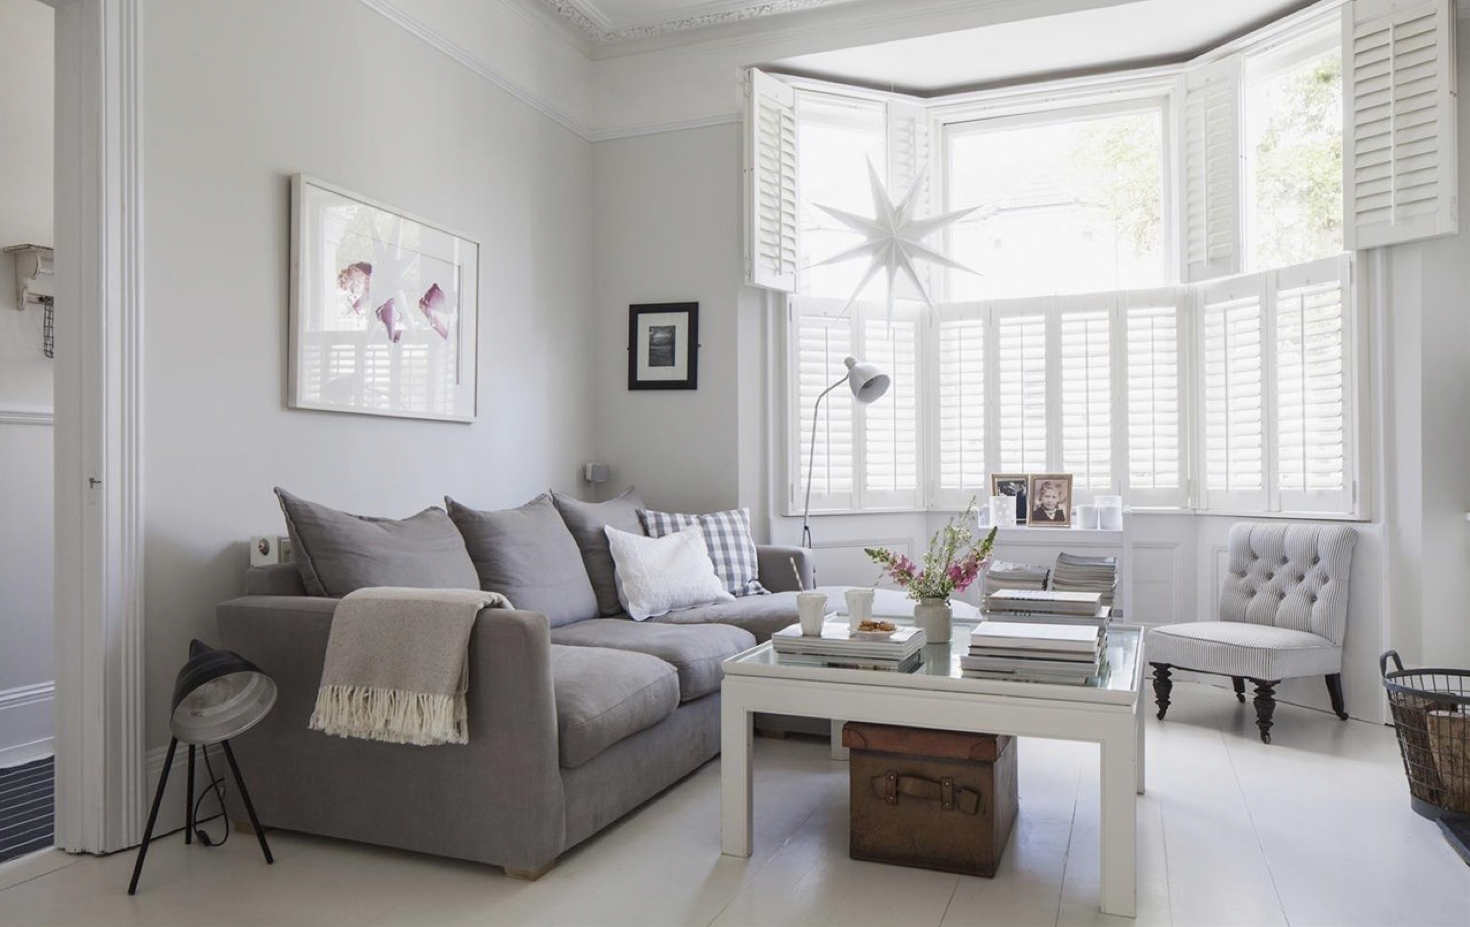 Light Grey Living Room Walls Victorian Terrace Sitting Room Plantation Shutters White